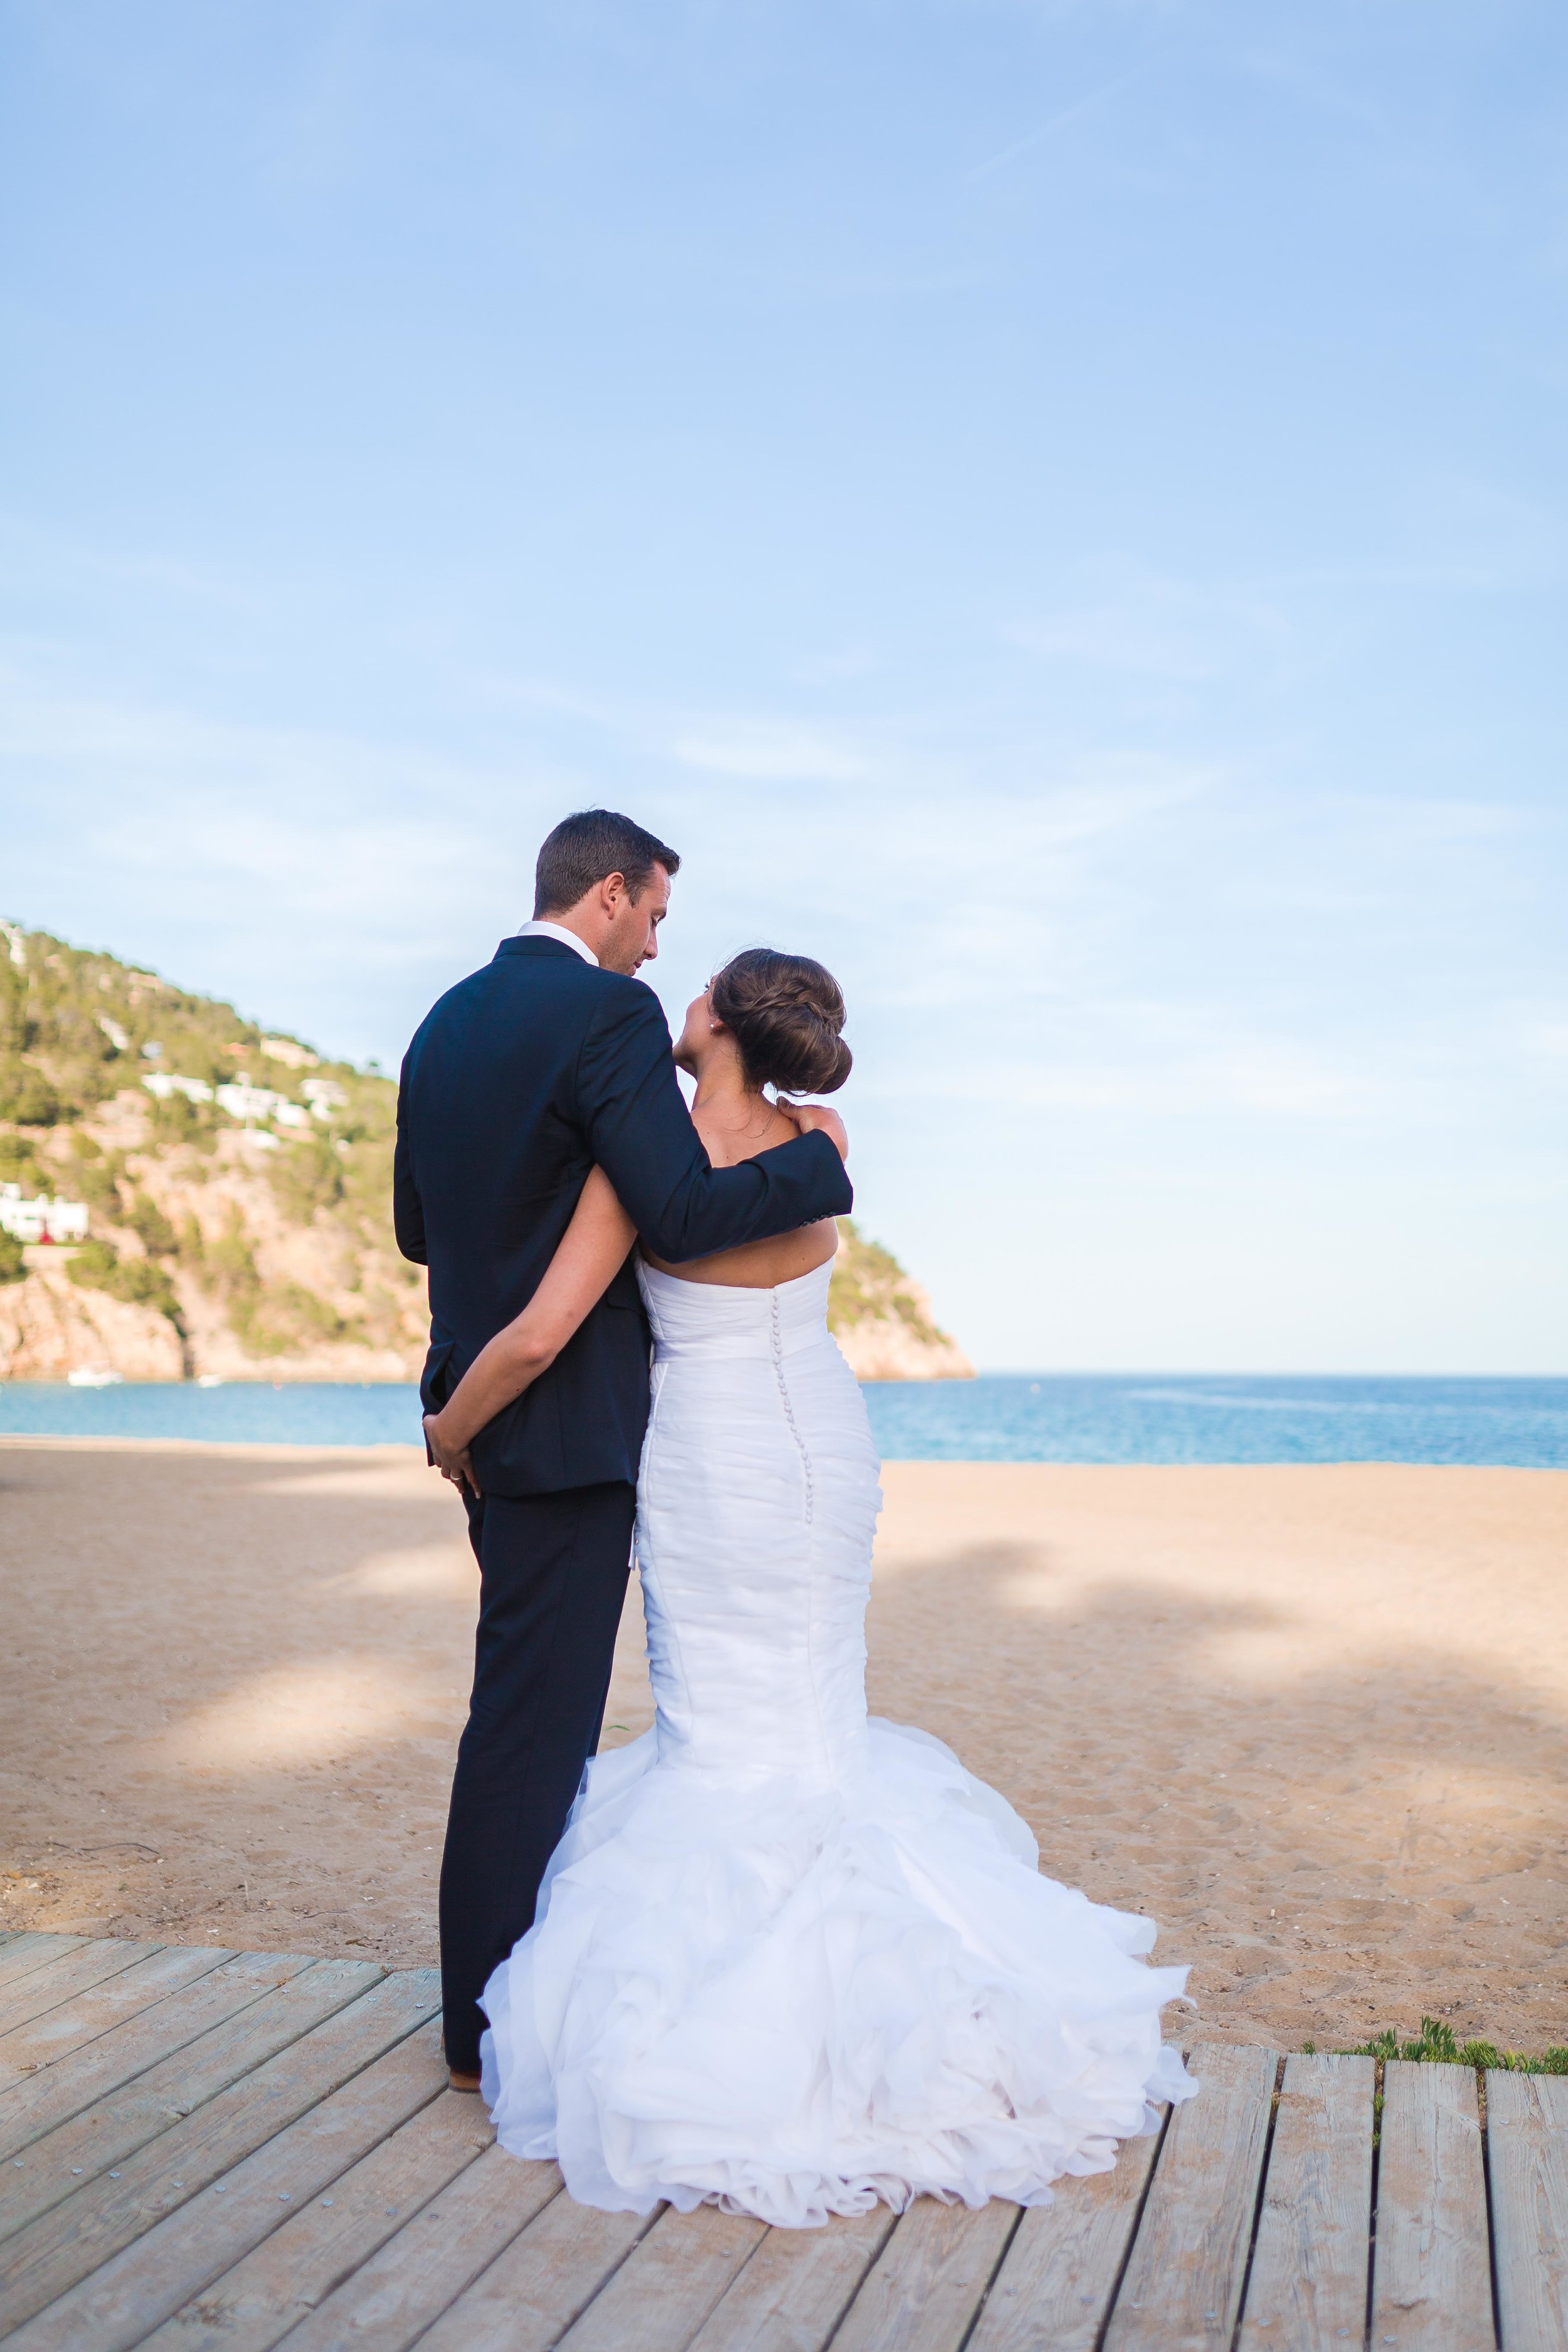 Natalie & Max Ibiza Destination Wedding-72.jpg